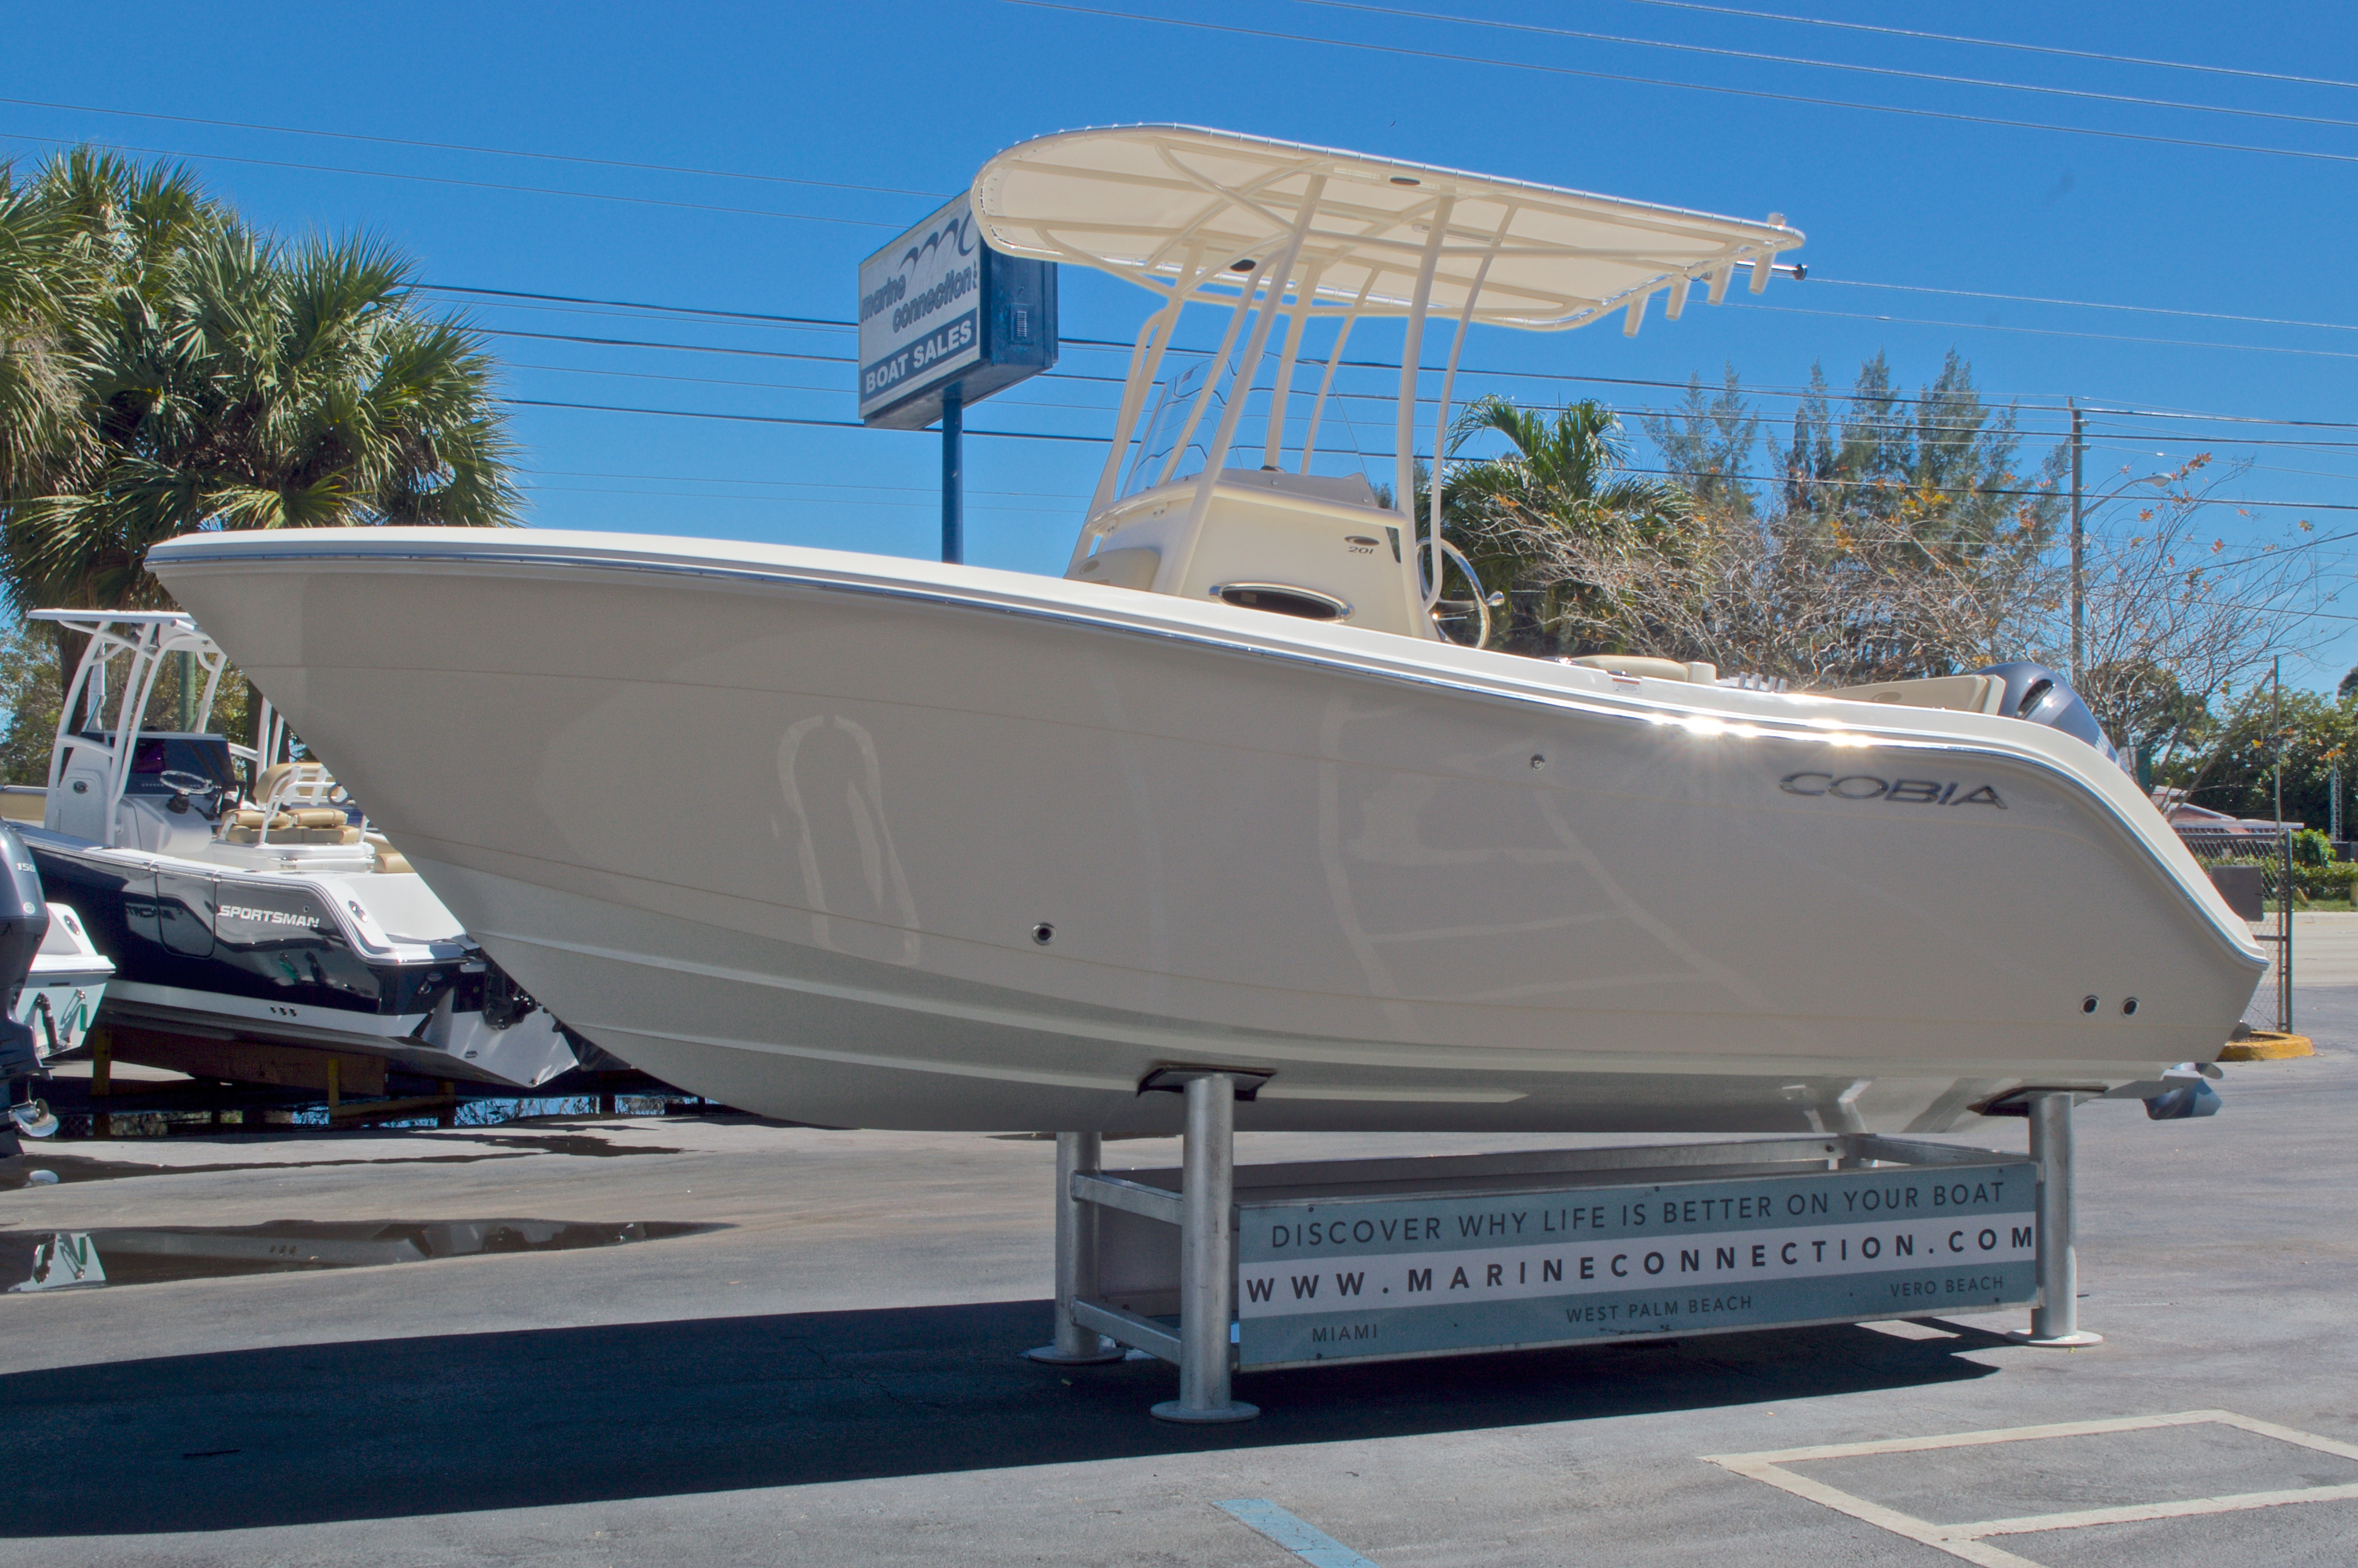 Thumbnail 4 for New 2016 Cobia 201 Center Console boat for sale in Vero Beach, FL